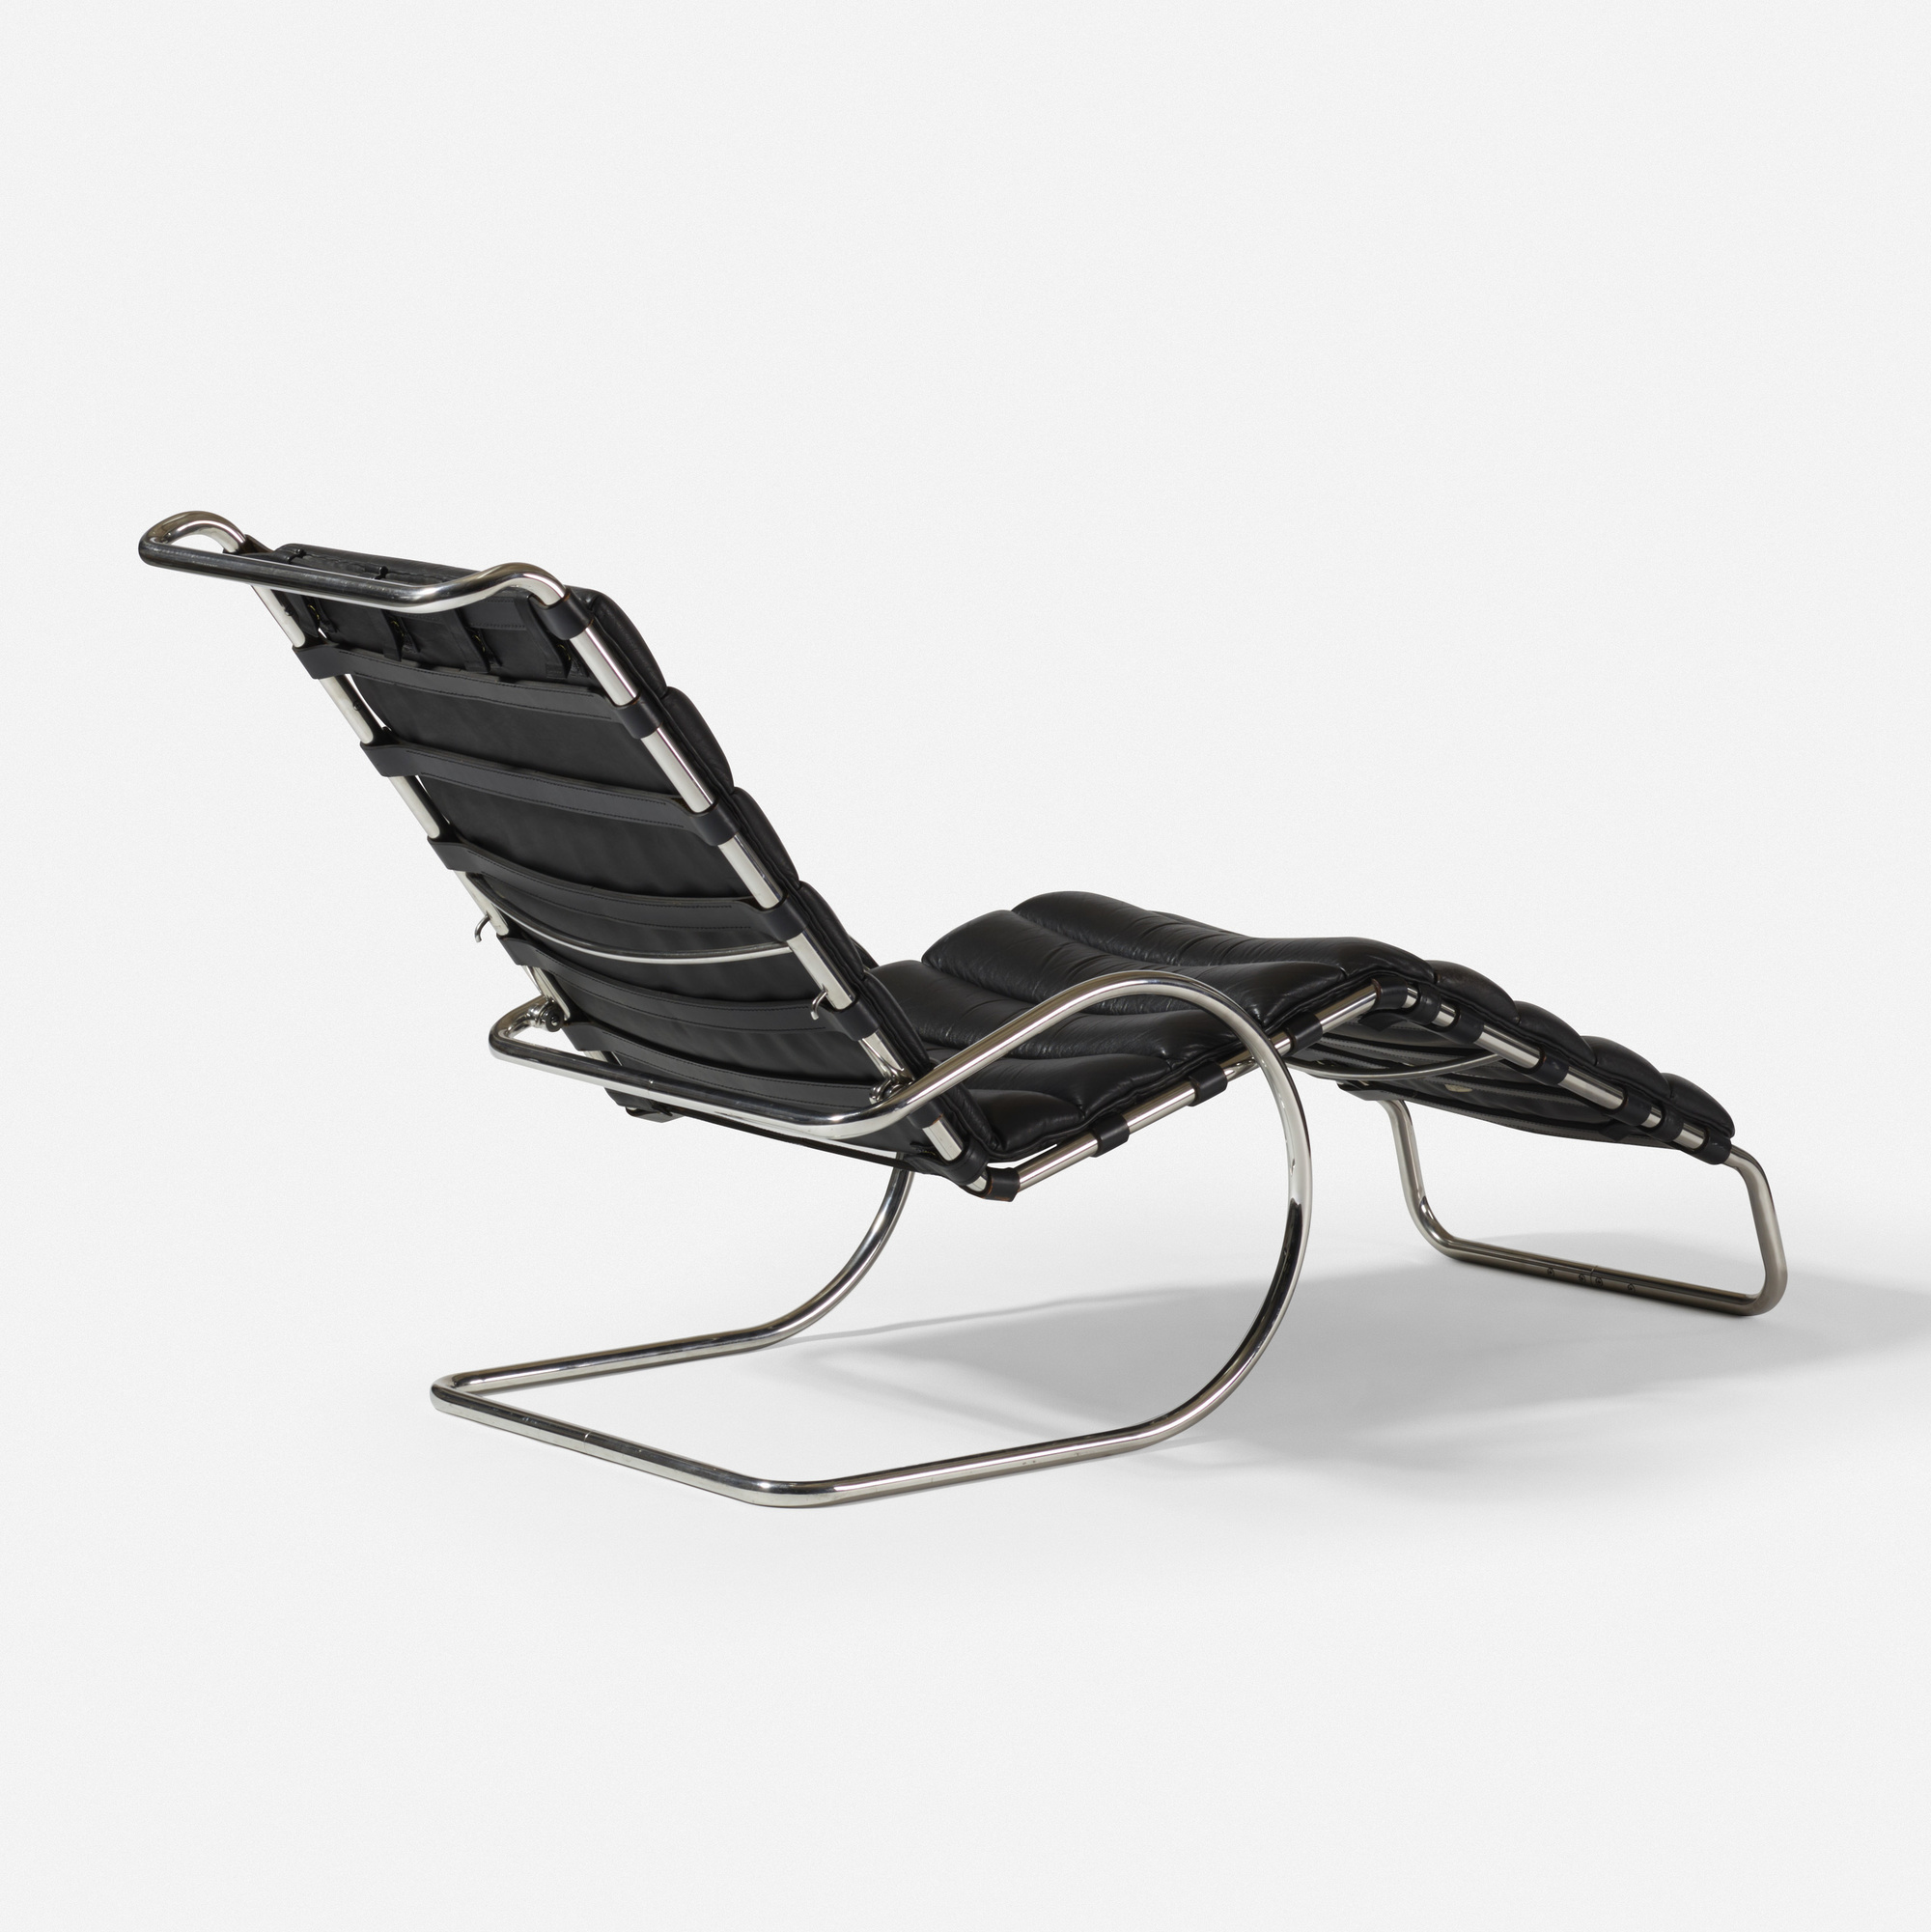 ... 198: Ludwig Mies Van Der Rohe / Model 242 Chaise Lounge (2 Of 2